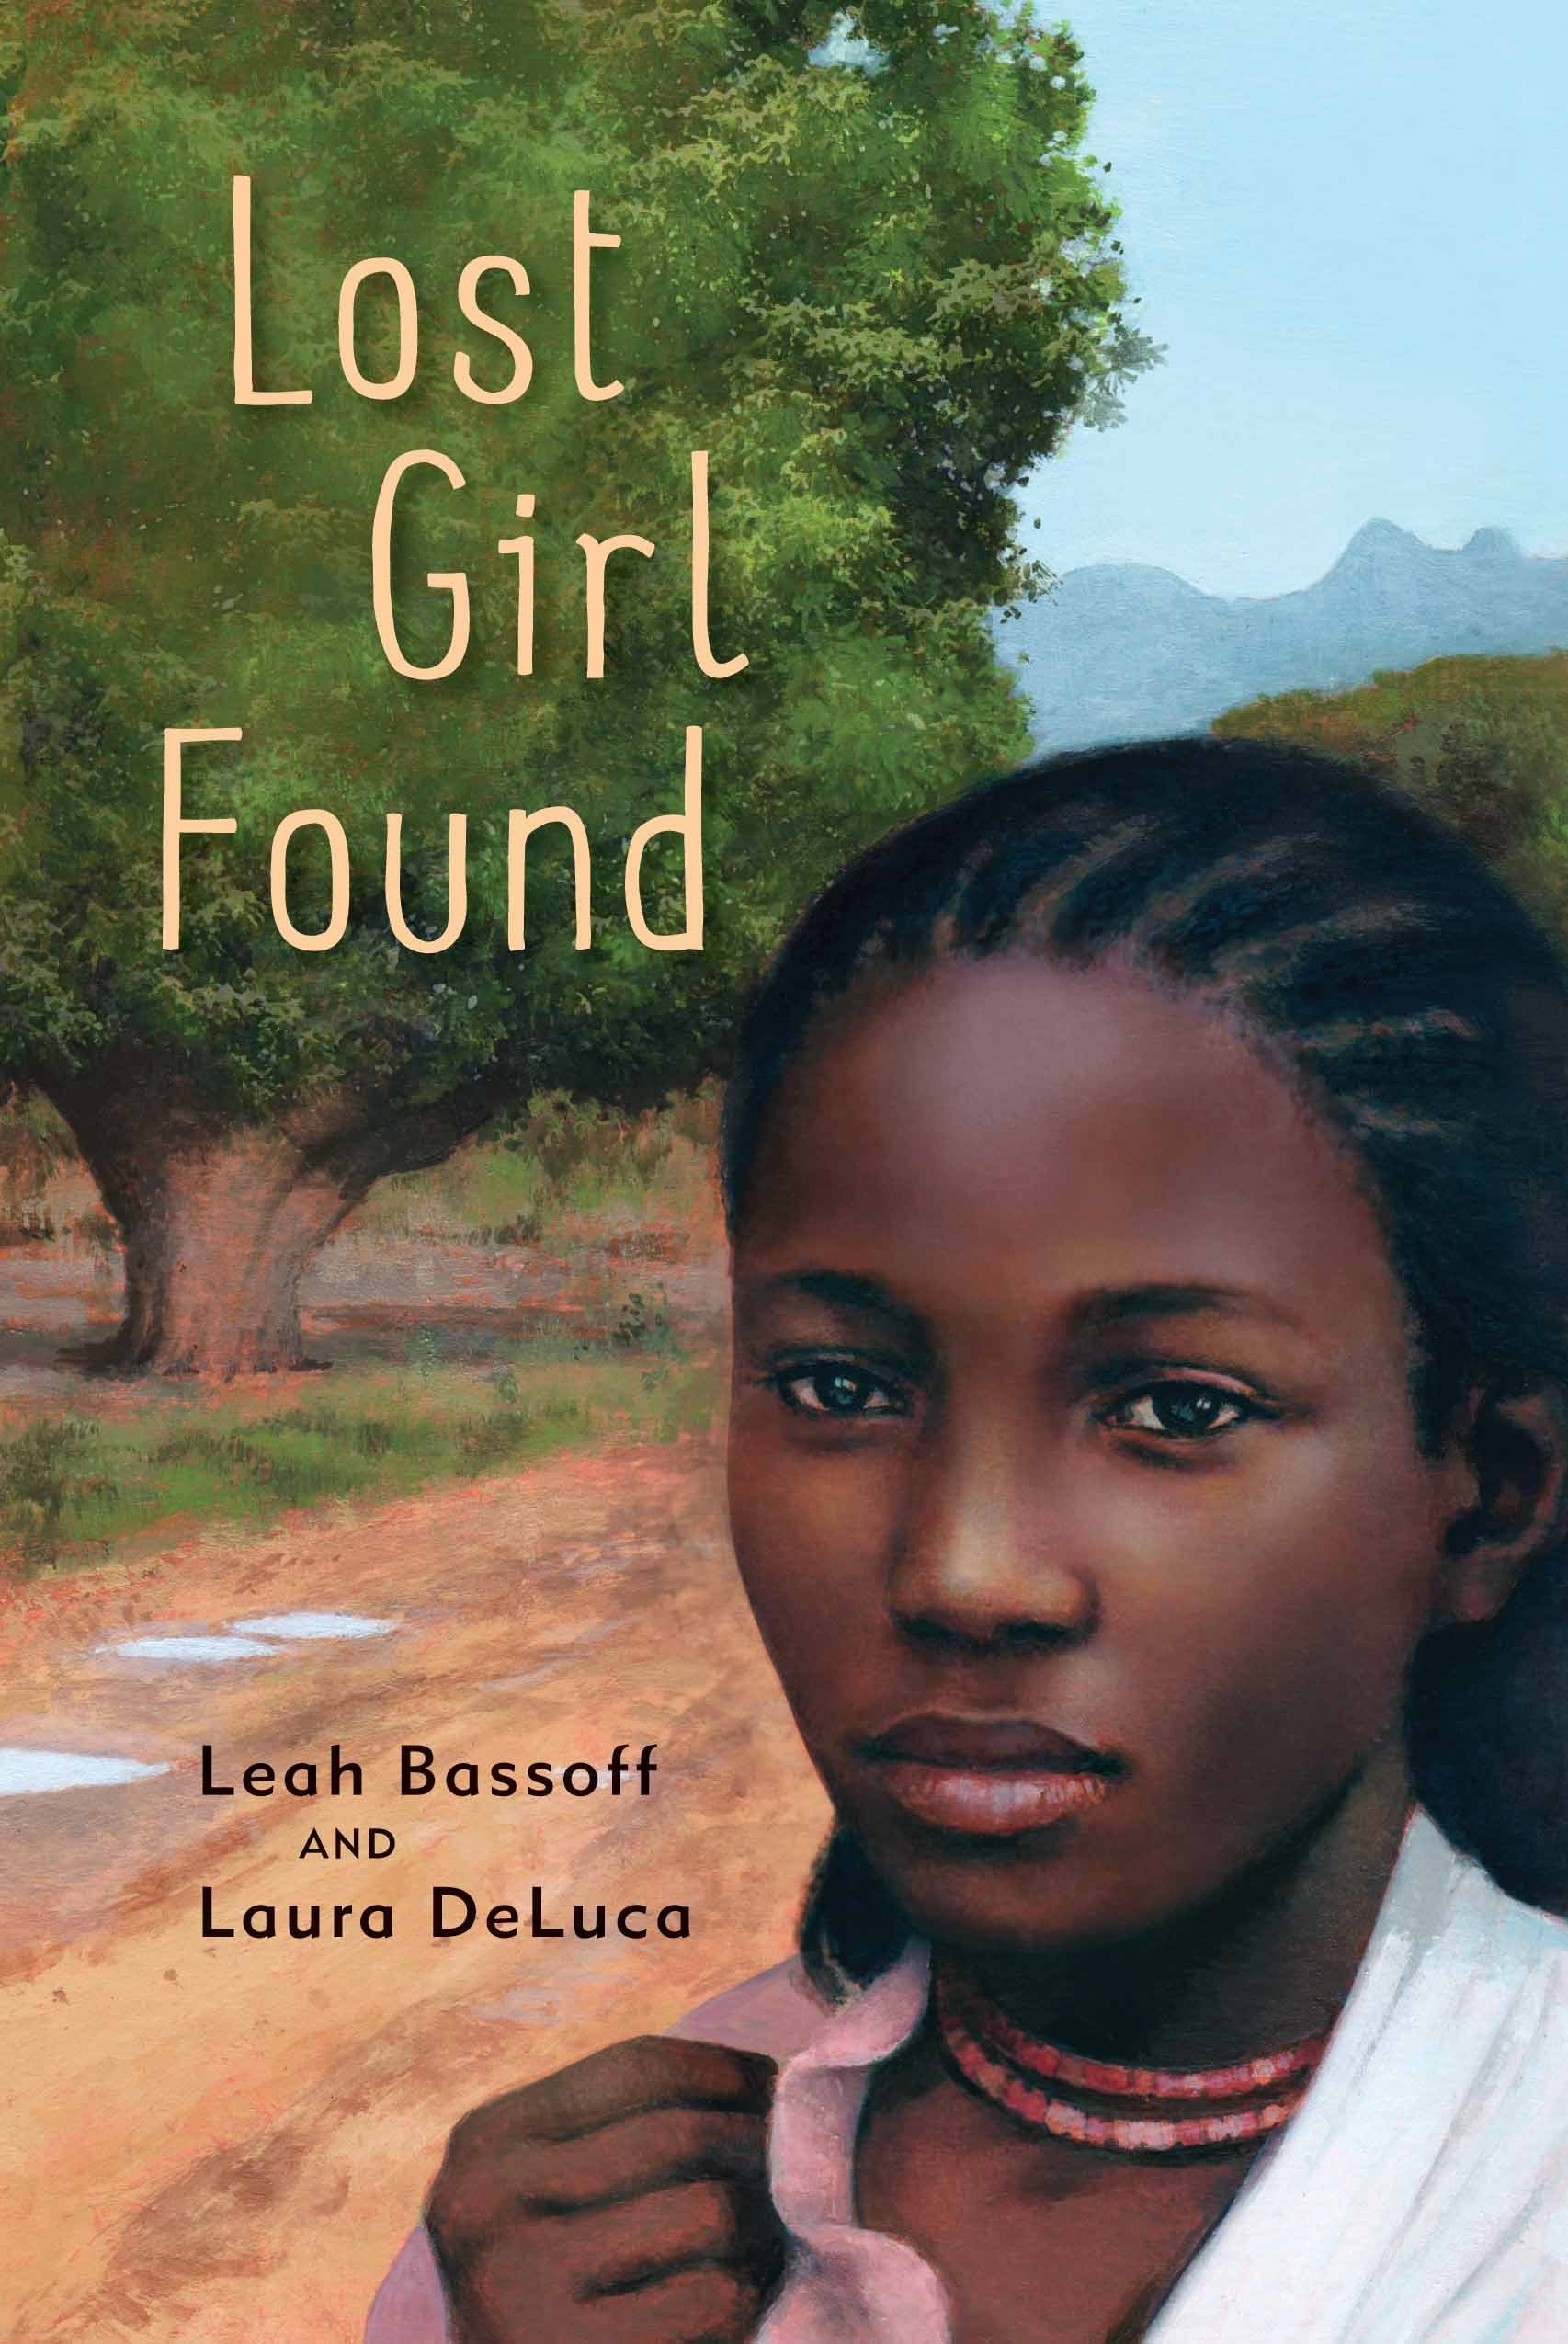 Lost Girl Found by Leah Bassoff and Laura Deluca